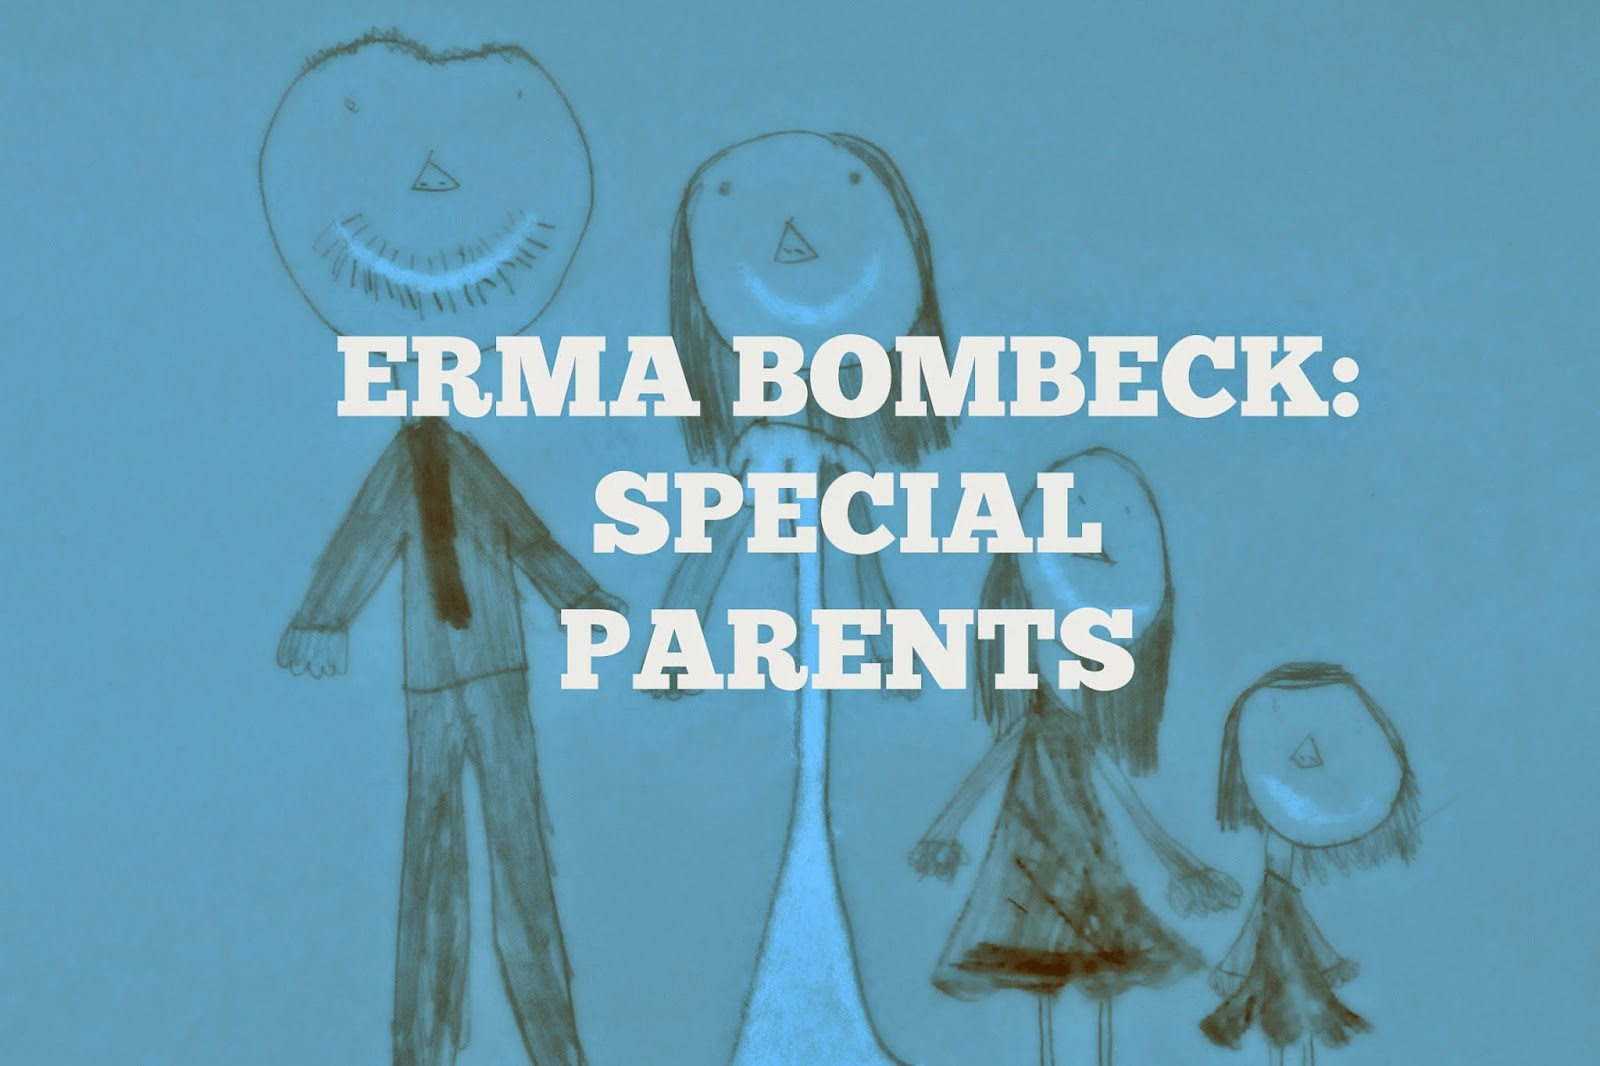 downs side up erma bombeck the special mother erma bombeck the special mother